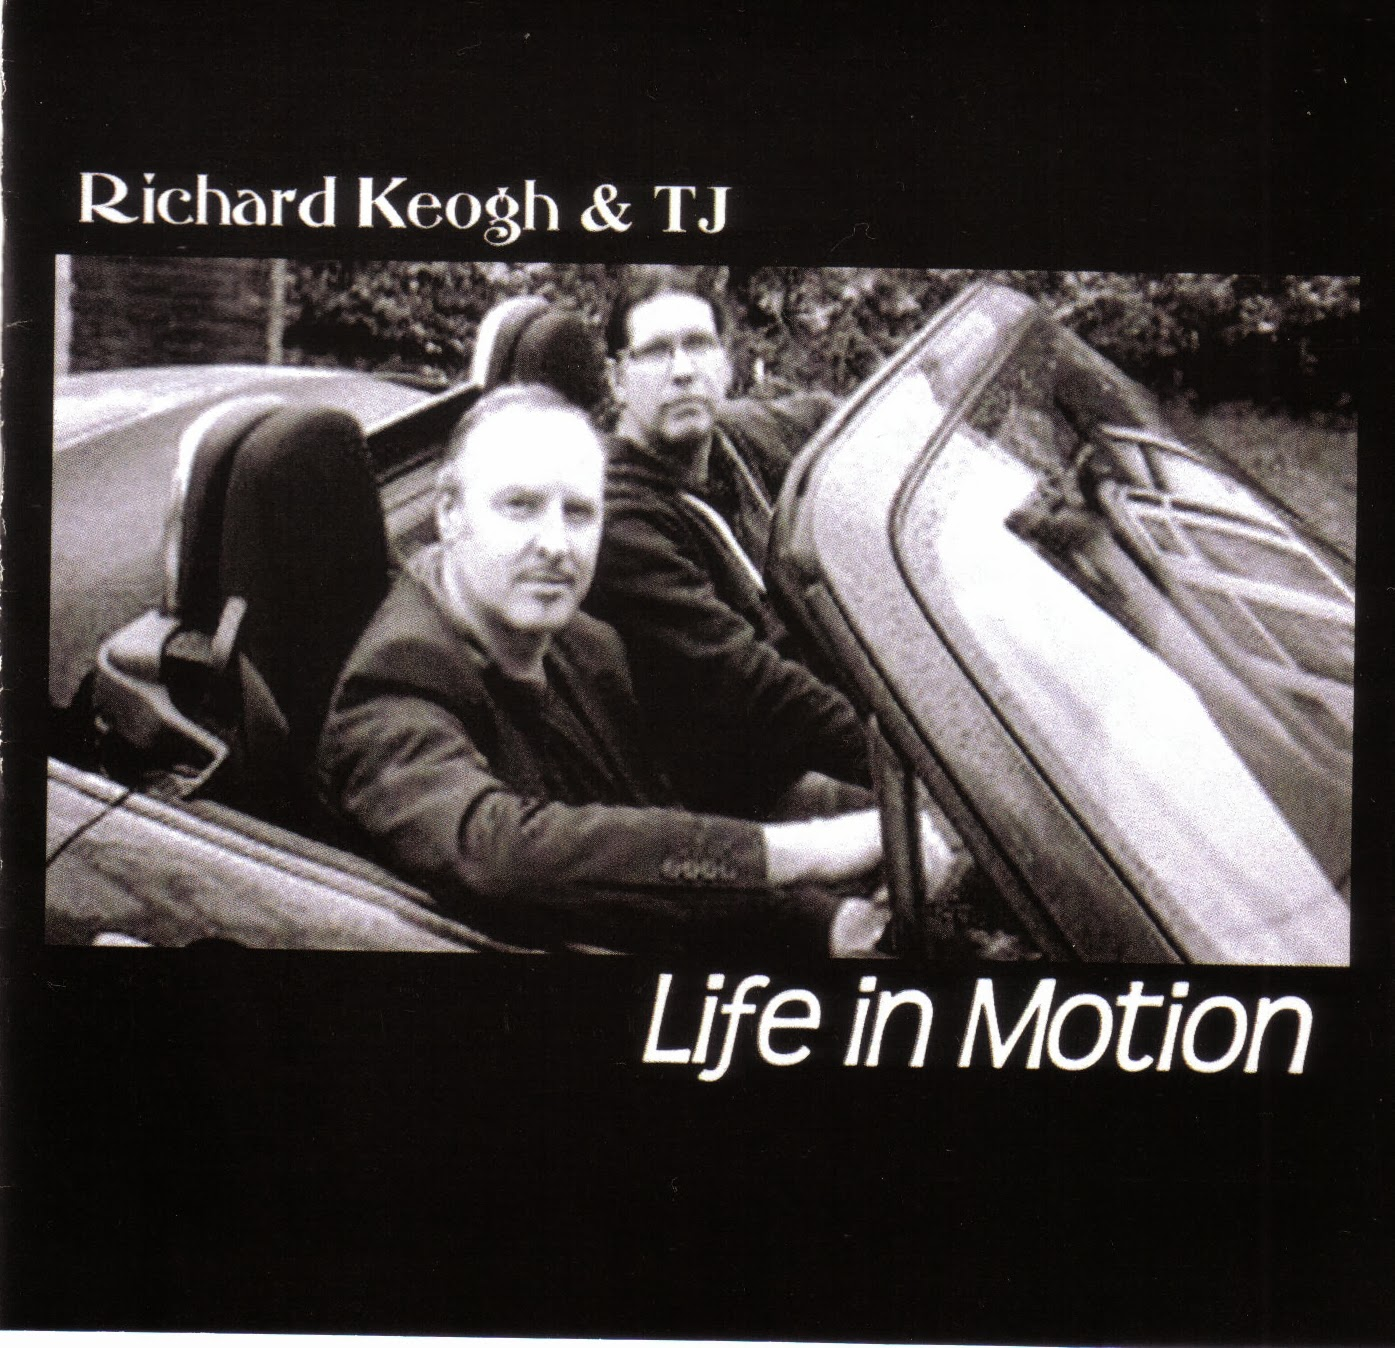 Richard Keogh & TJ - Life In Motion